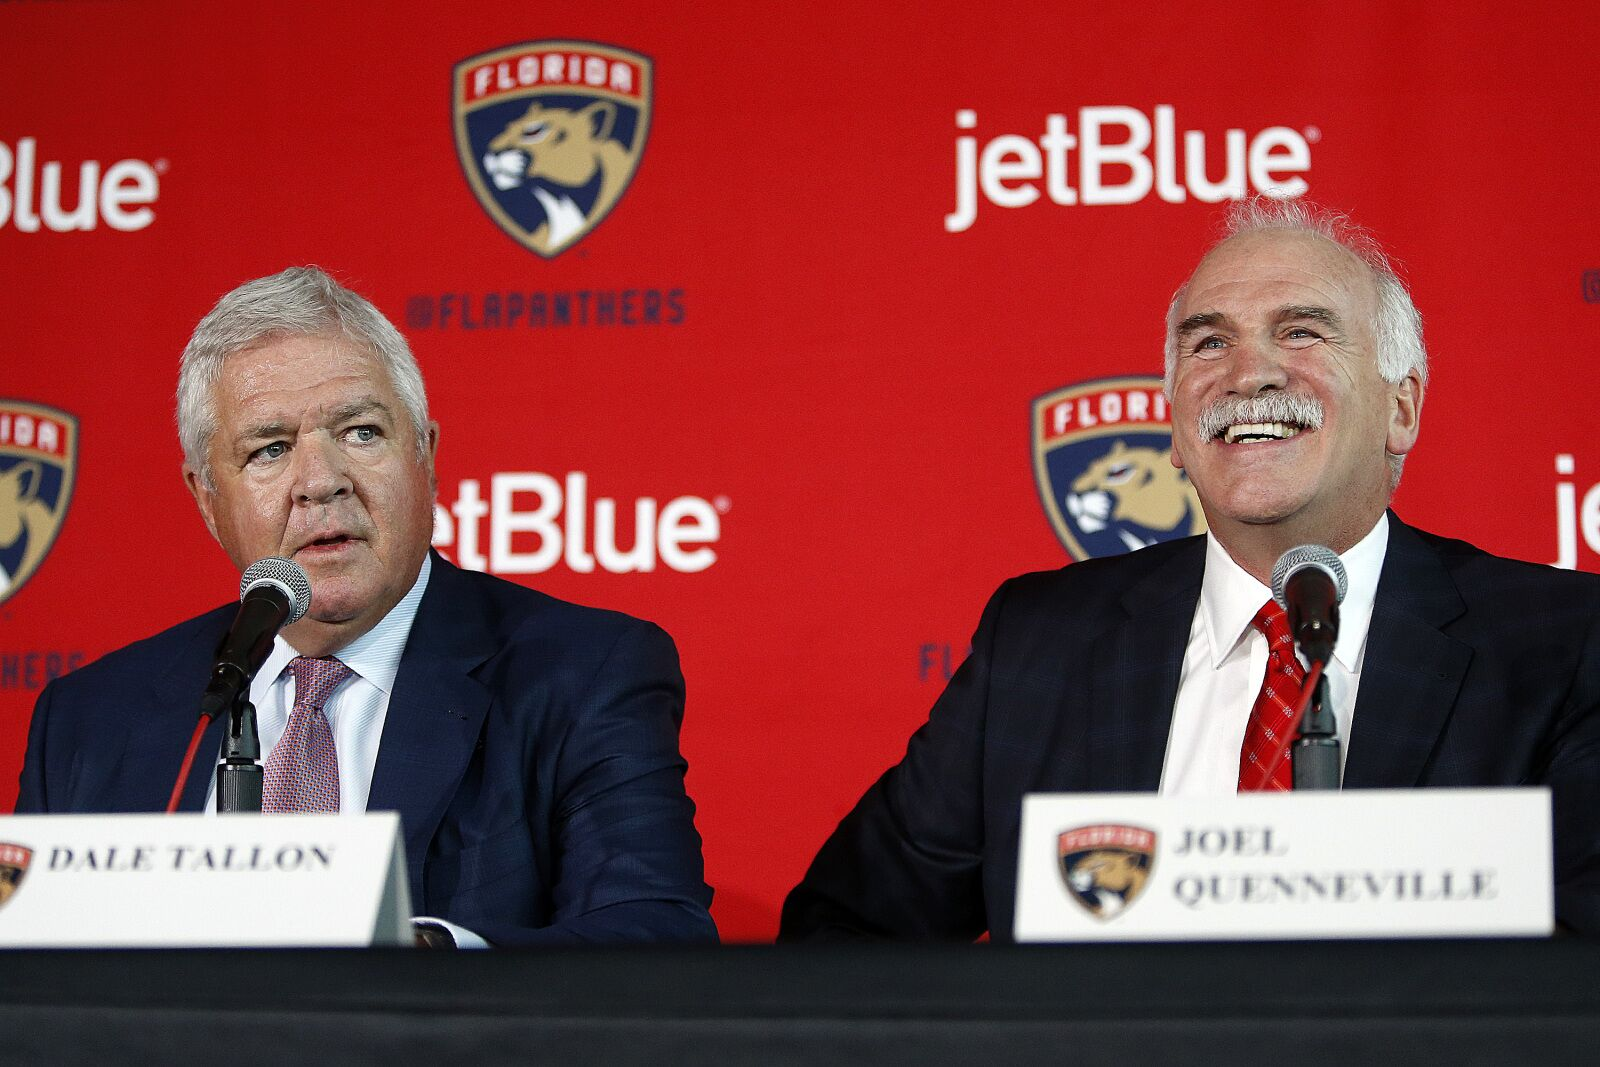 Florida Panthers: Thank You Dale Tallon For the First Day of Free Agency